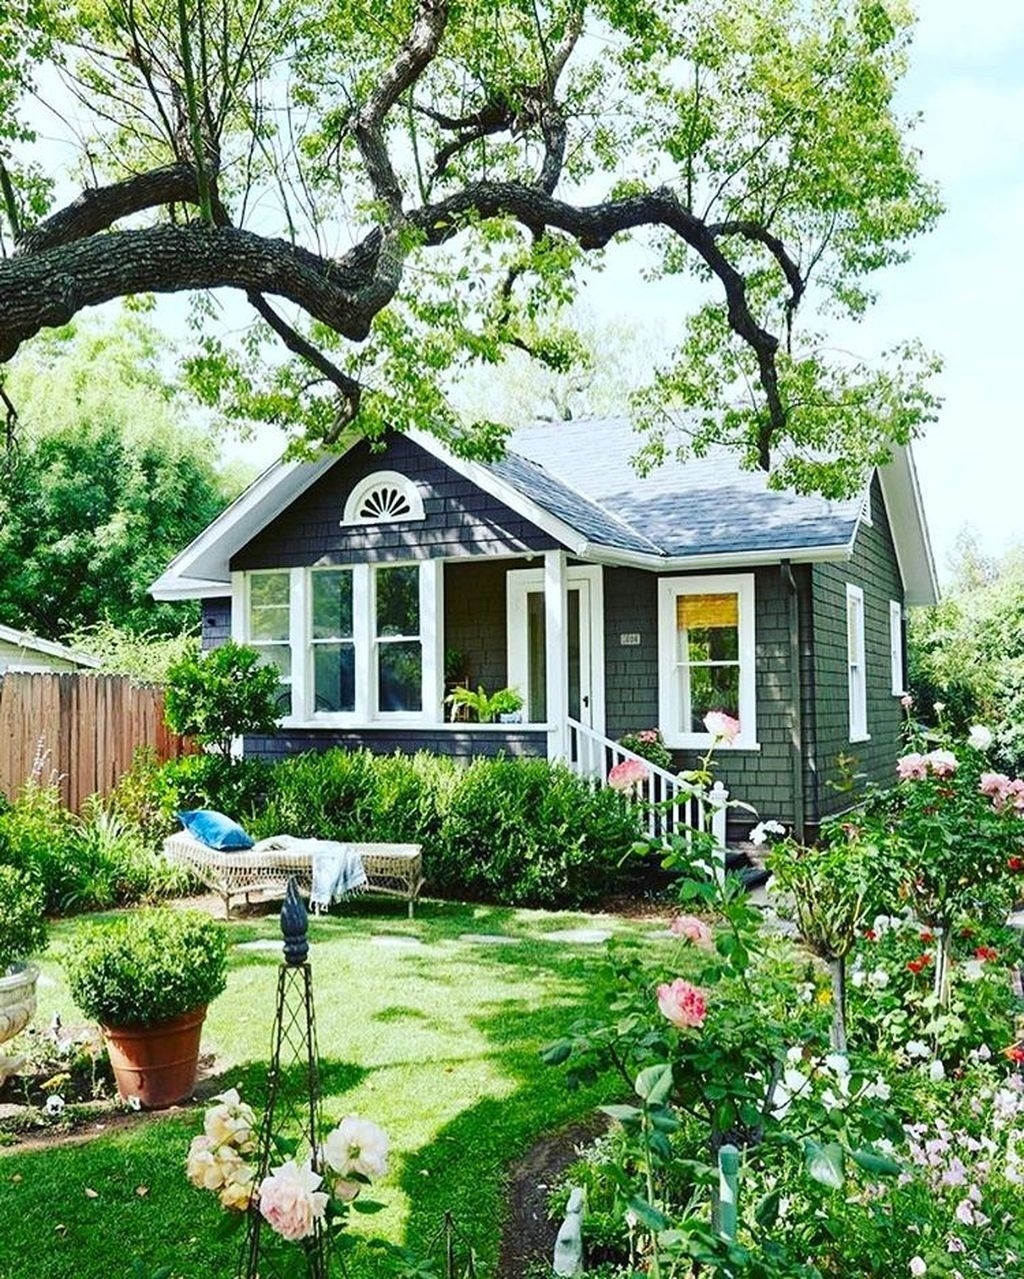 Awesome Cottage Garden Design Ideas For Your Dream House41